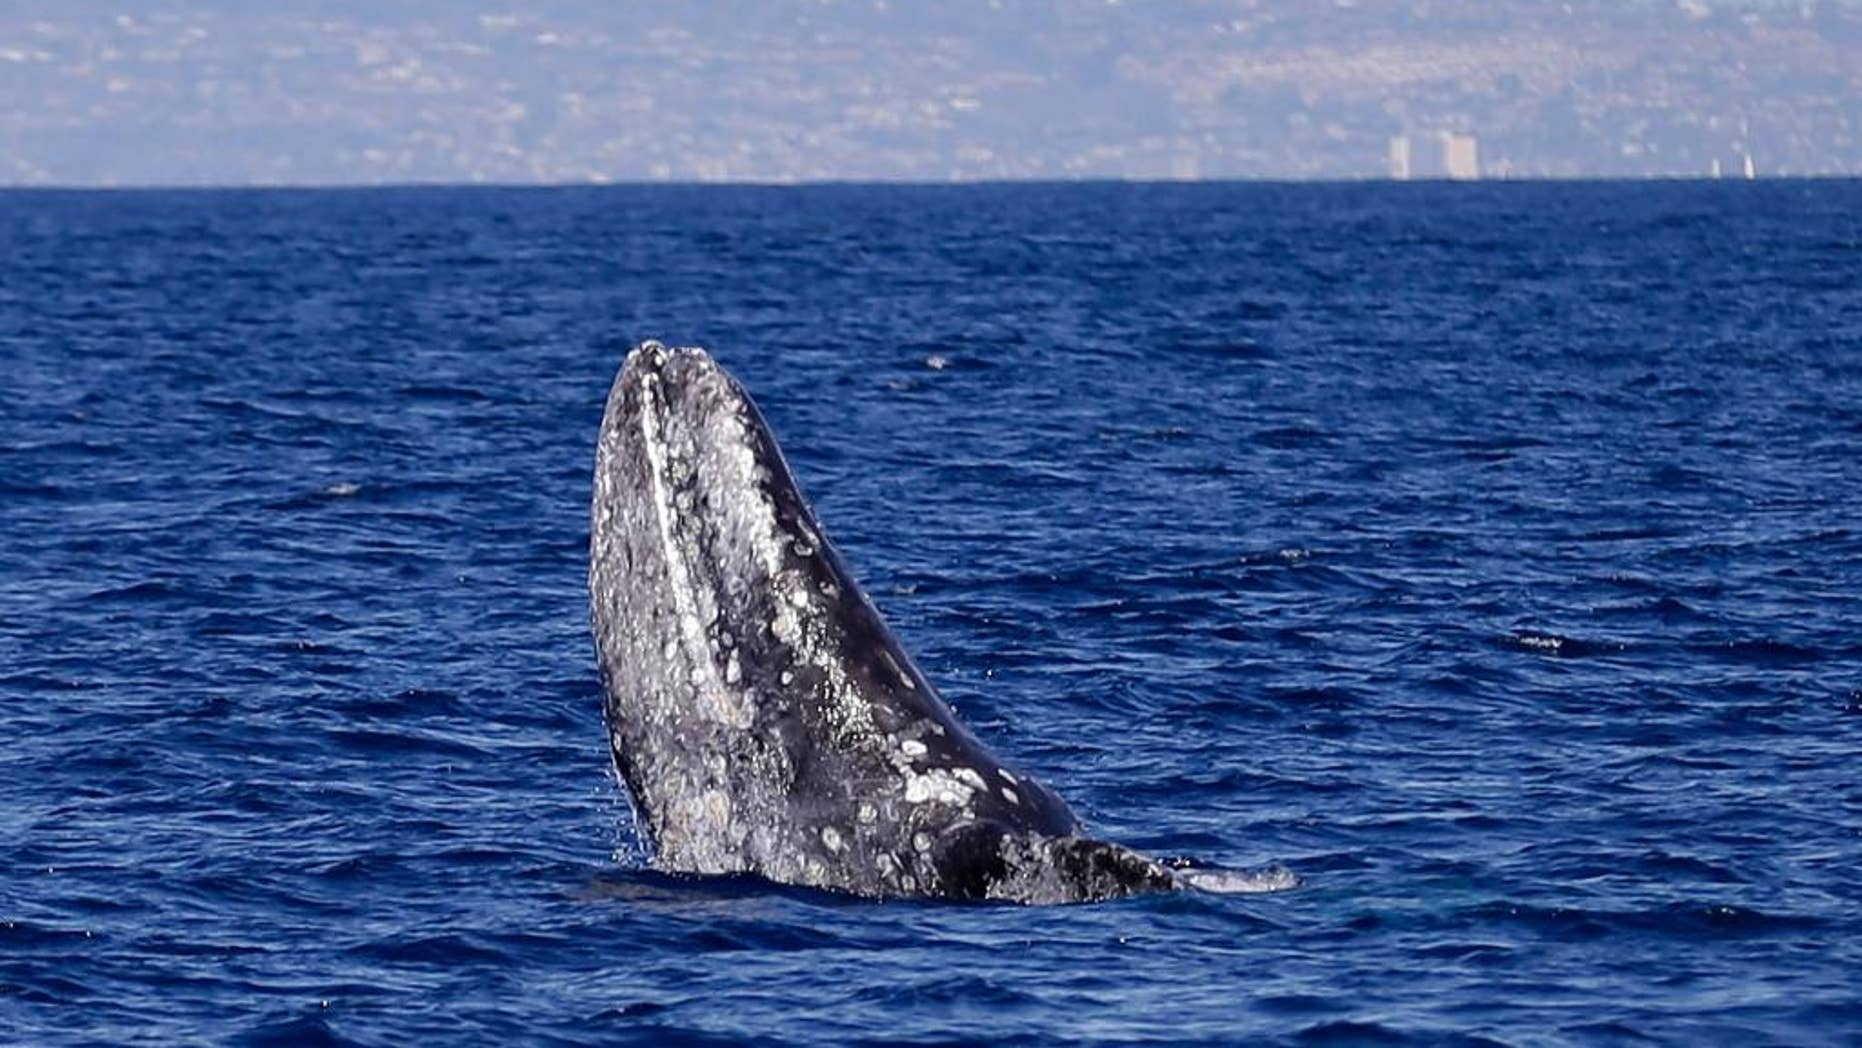 Westlake Legal Group San-Diego-Whale-Watching-1 Solar storms might be causing gray whales to get lost LiveScience Kimberly Hickok fox-news/science/wild-nature/mammals fox-news/science/planet-earth/oceans fox-news/science fnc/science fnc b2476046-c804-518c-a609-6c4cf5d3010a article